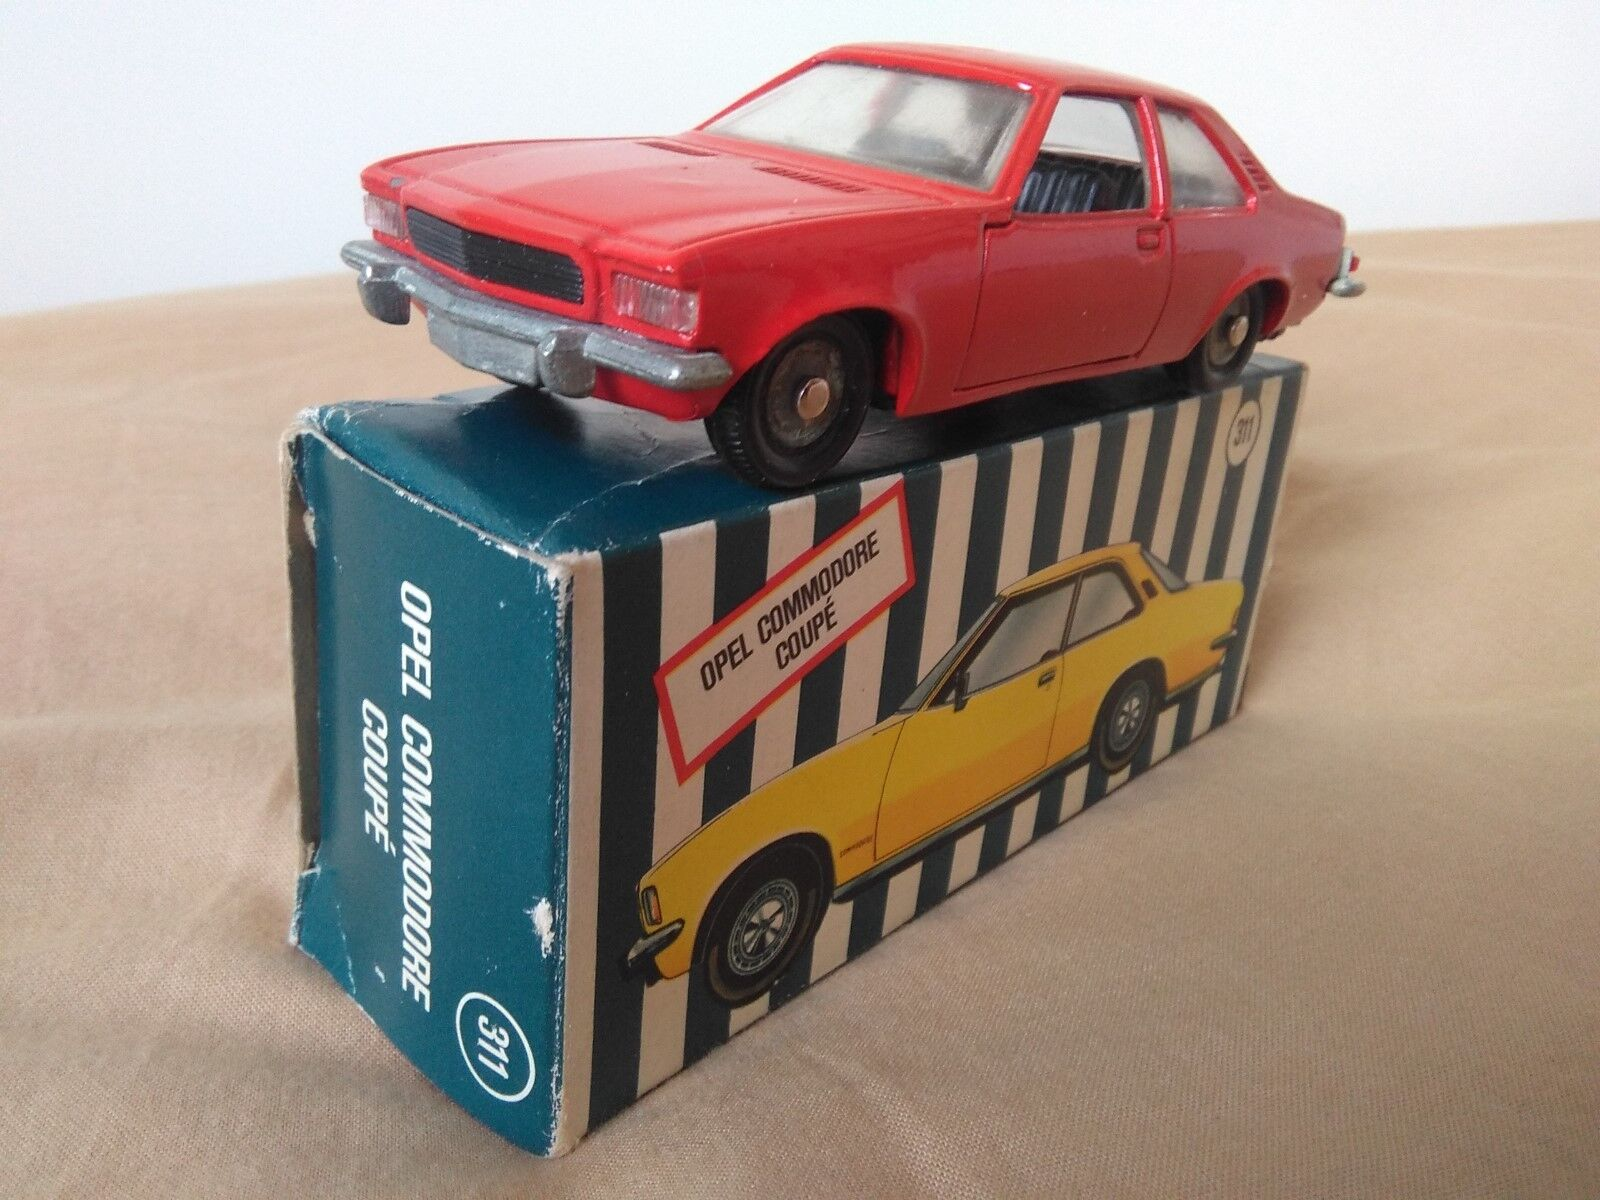 Antigua miniatura Ziss RW #311 Opel Commodore Coupé. 1:43 R.W.-Modell. Mini-Auto